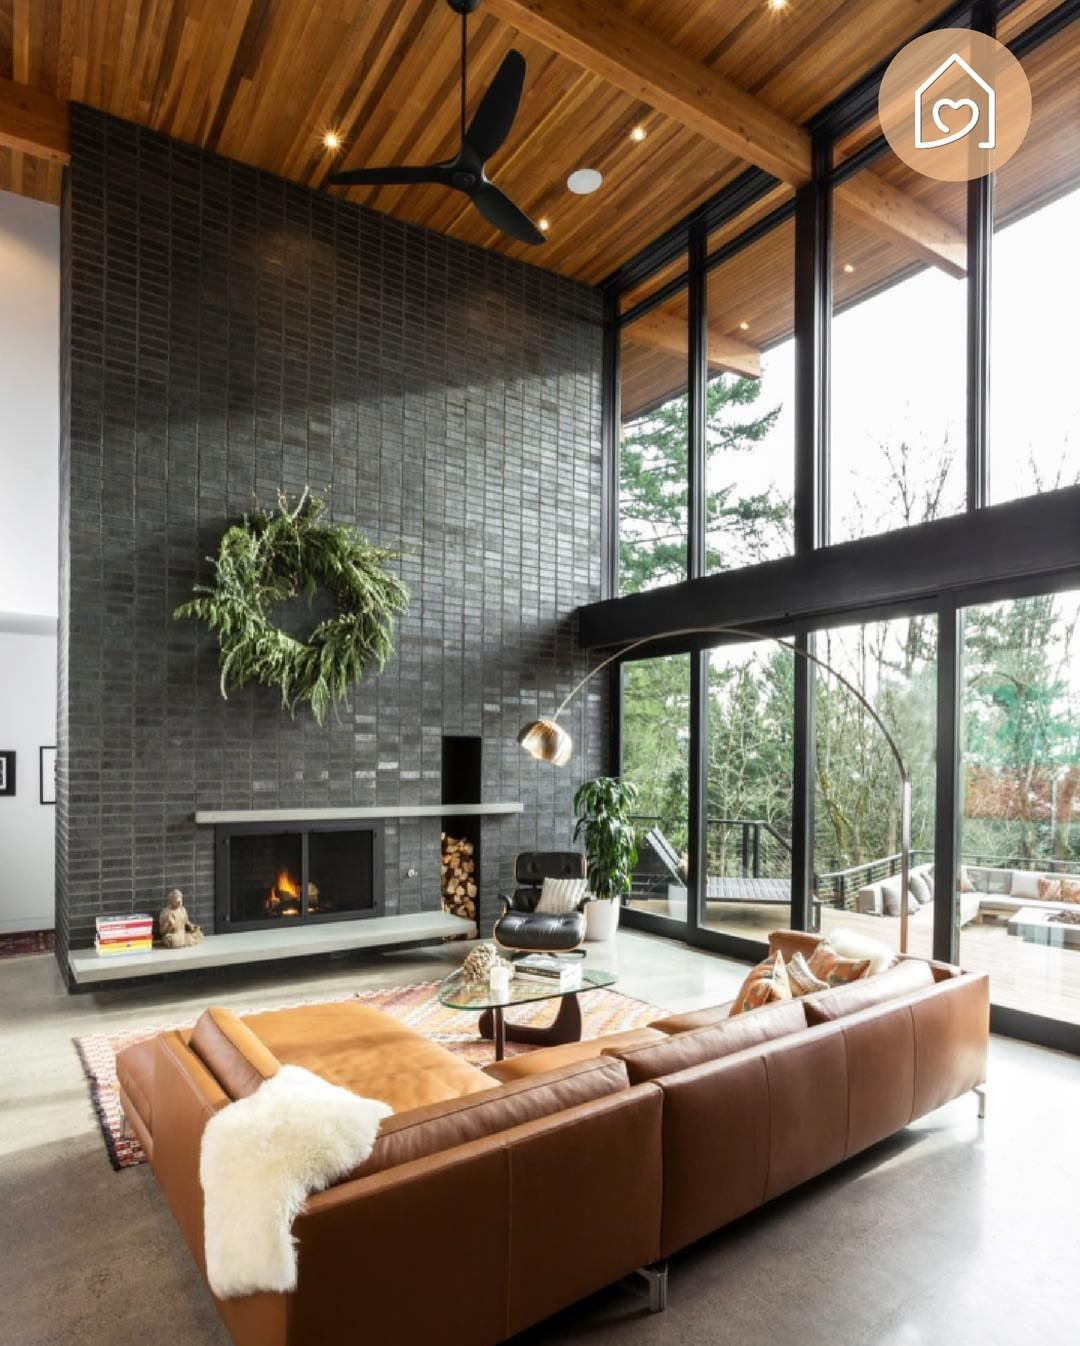 What A Wonderfull Industrial Livingroom Love The Wooden Roof And High Windows Credit Modern House Design Living Room Decor Modern House Interior